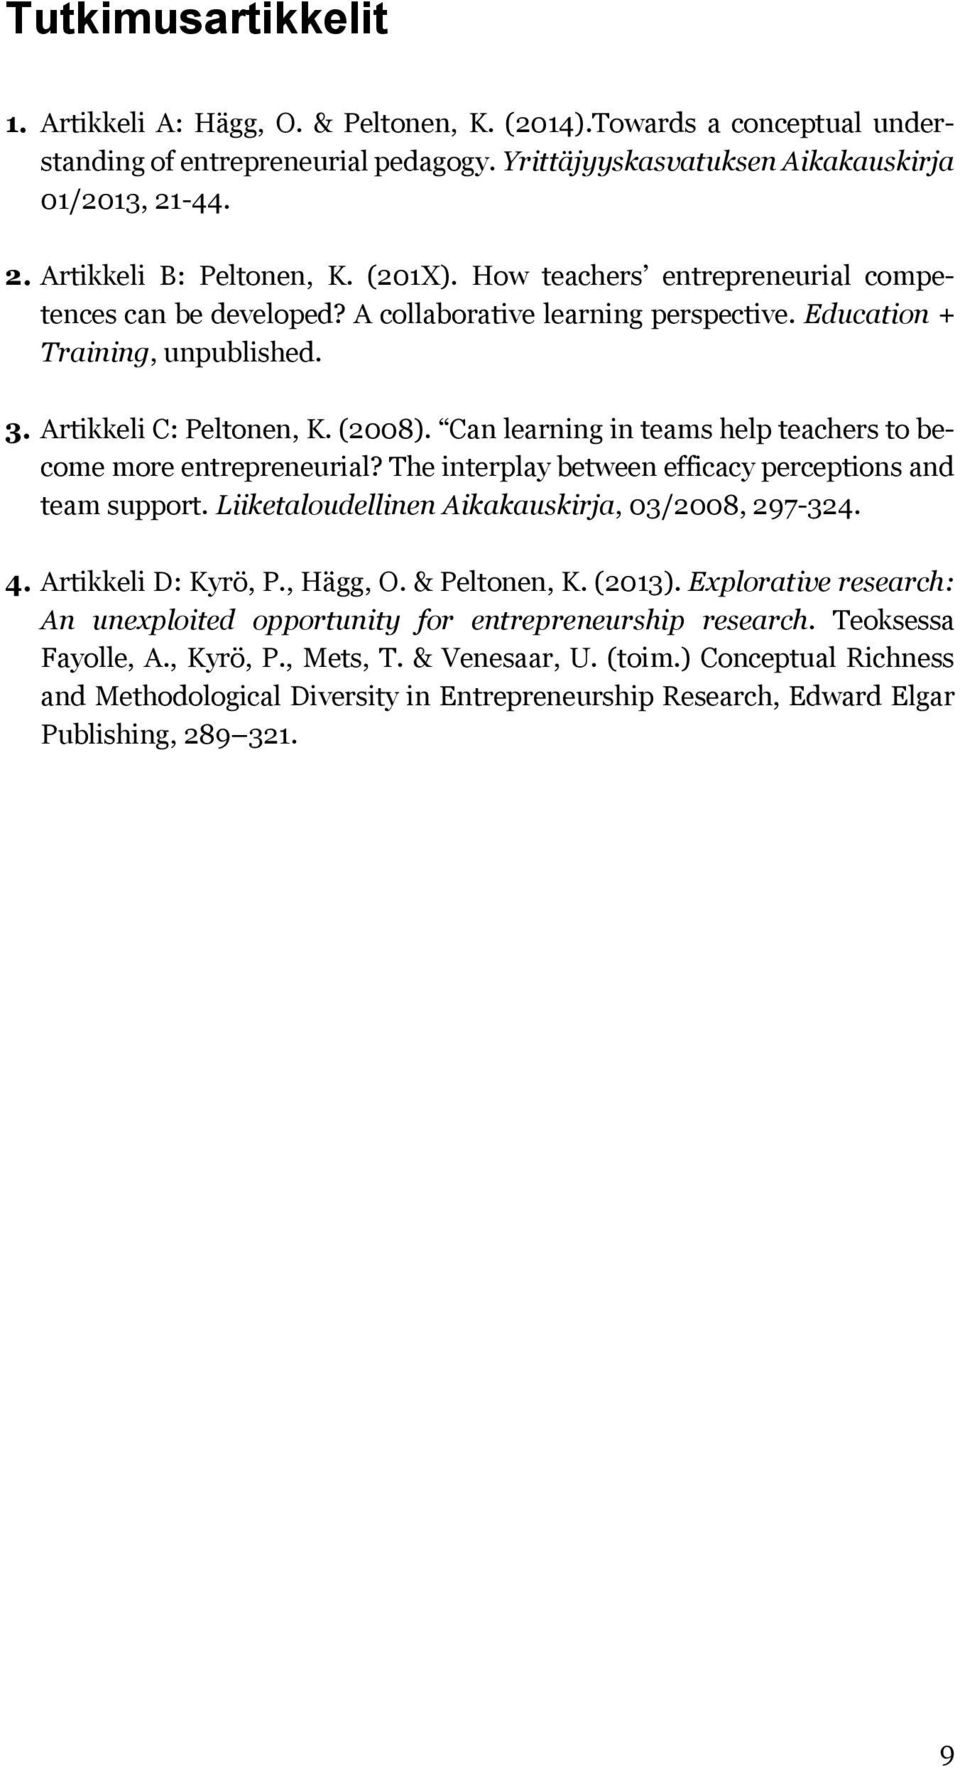 Artikkeli C: Peltonen, K. (2008). Can learning in teams help teachers to become more entrepreneurial? The interplay between efficacy perceptions and team support.